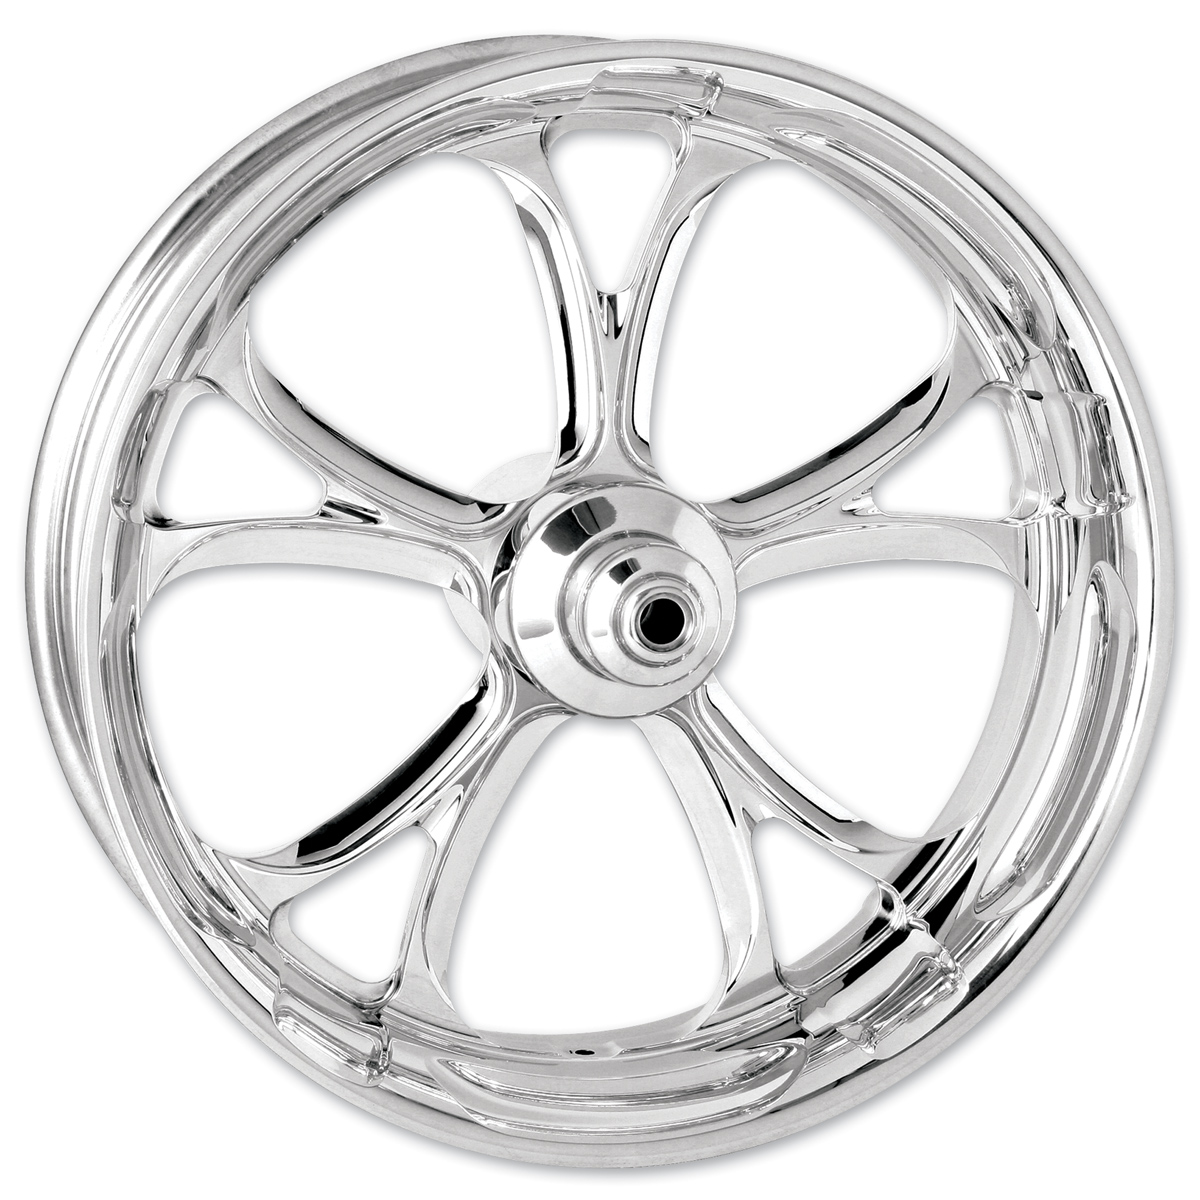 Performance Machine Luxe Chrome Front Wheel 21x3.5 Non-ABS